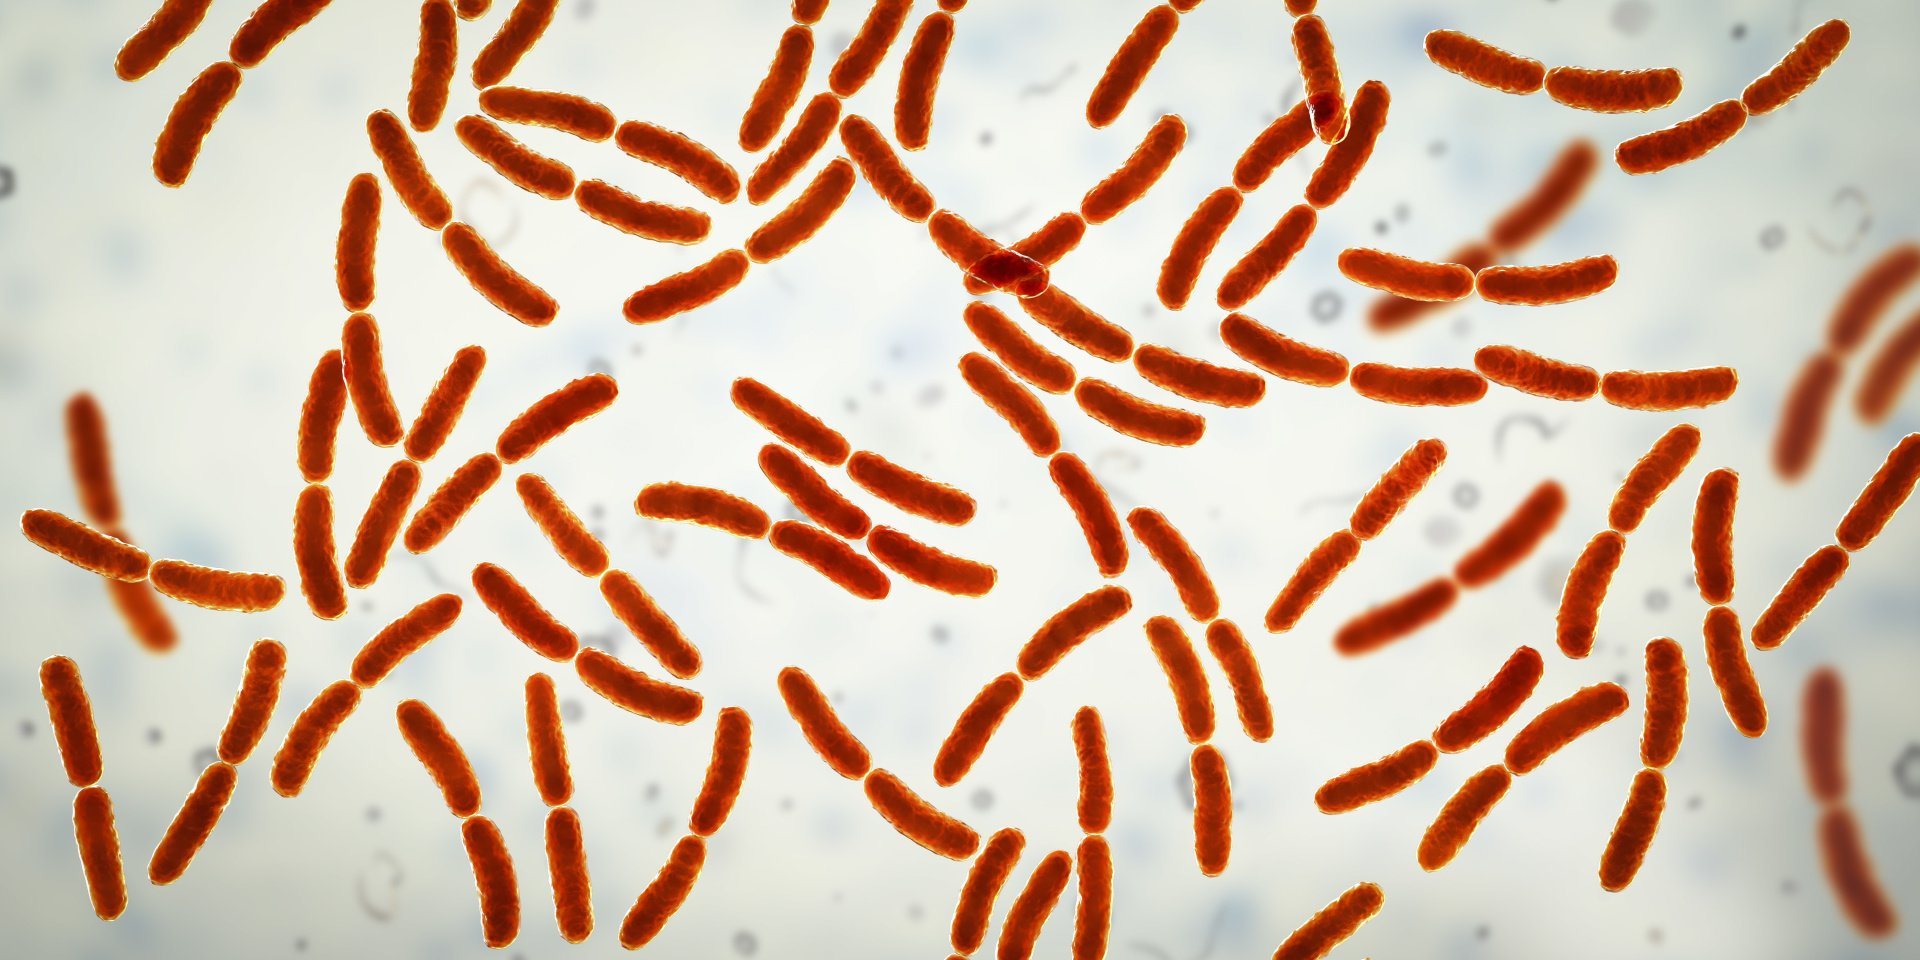 Small Intestinal Bacterial Overgrowth: The Signs and Symptoms of SIBO